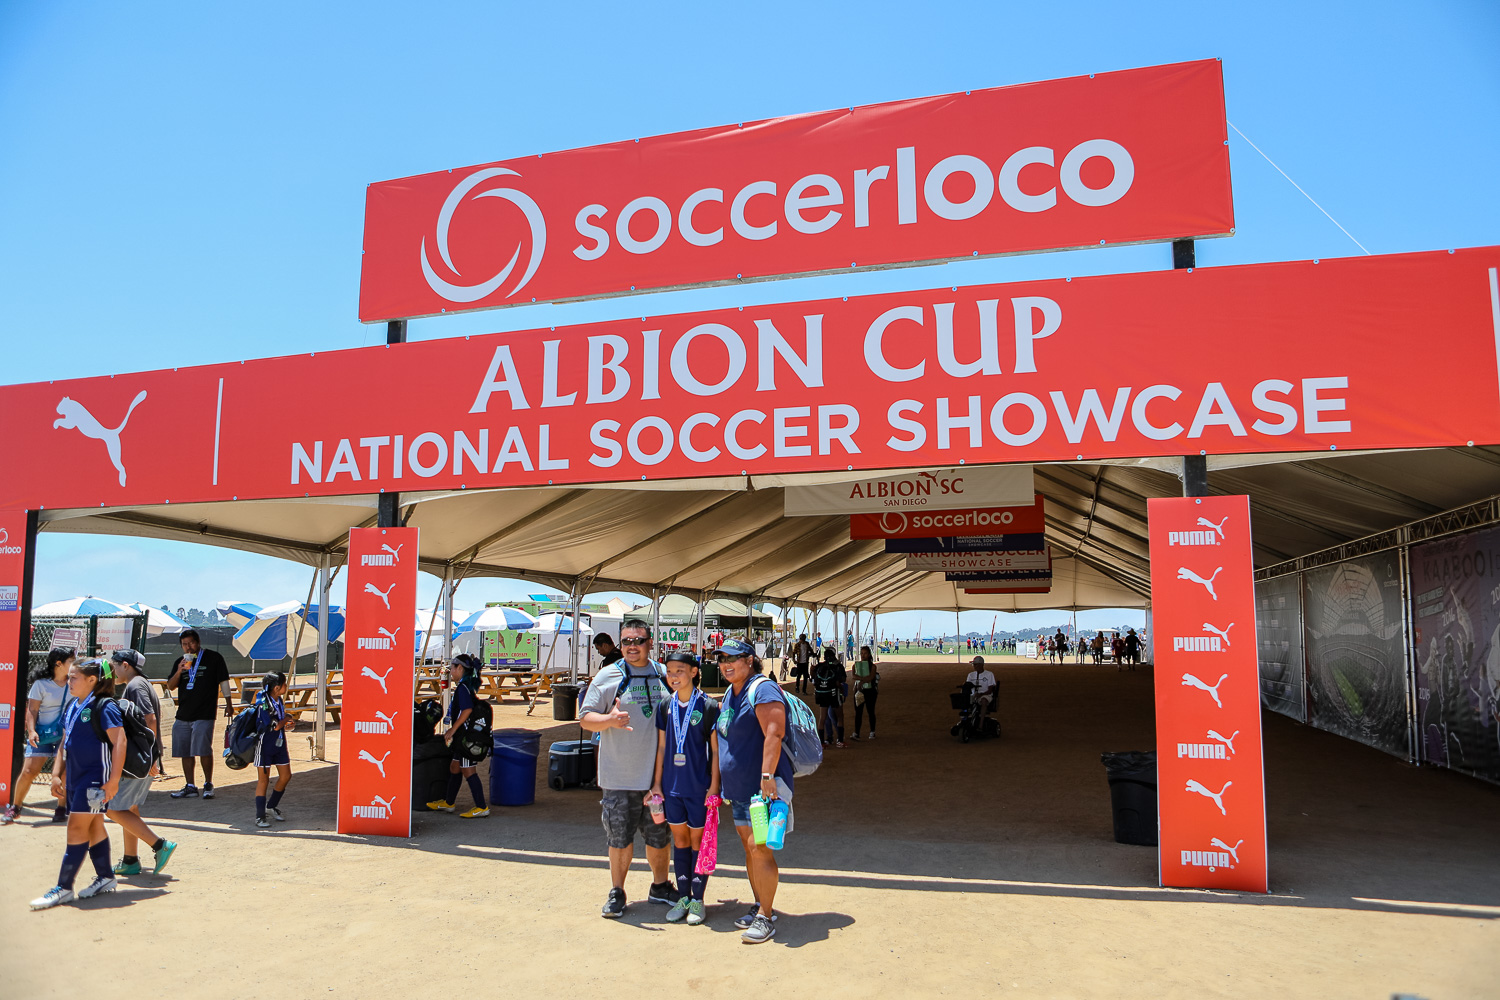 Albion Cup National Soccer Showcase Continues Tradition of Excellence